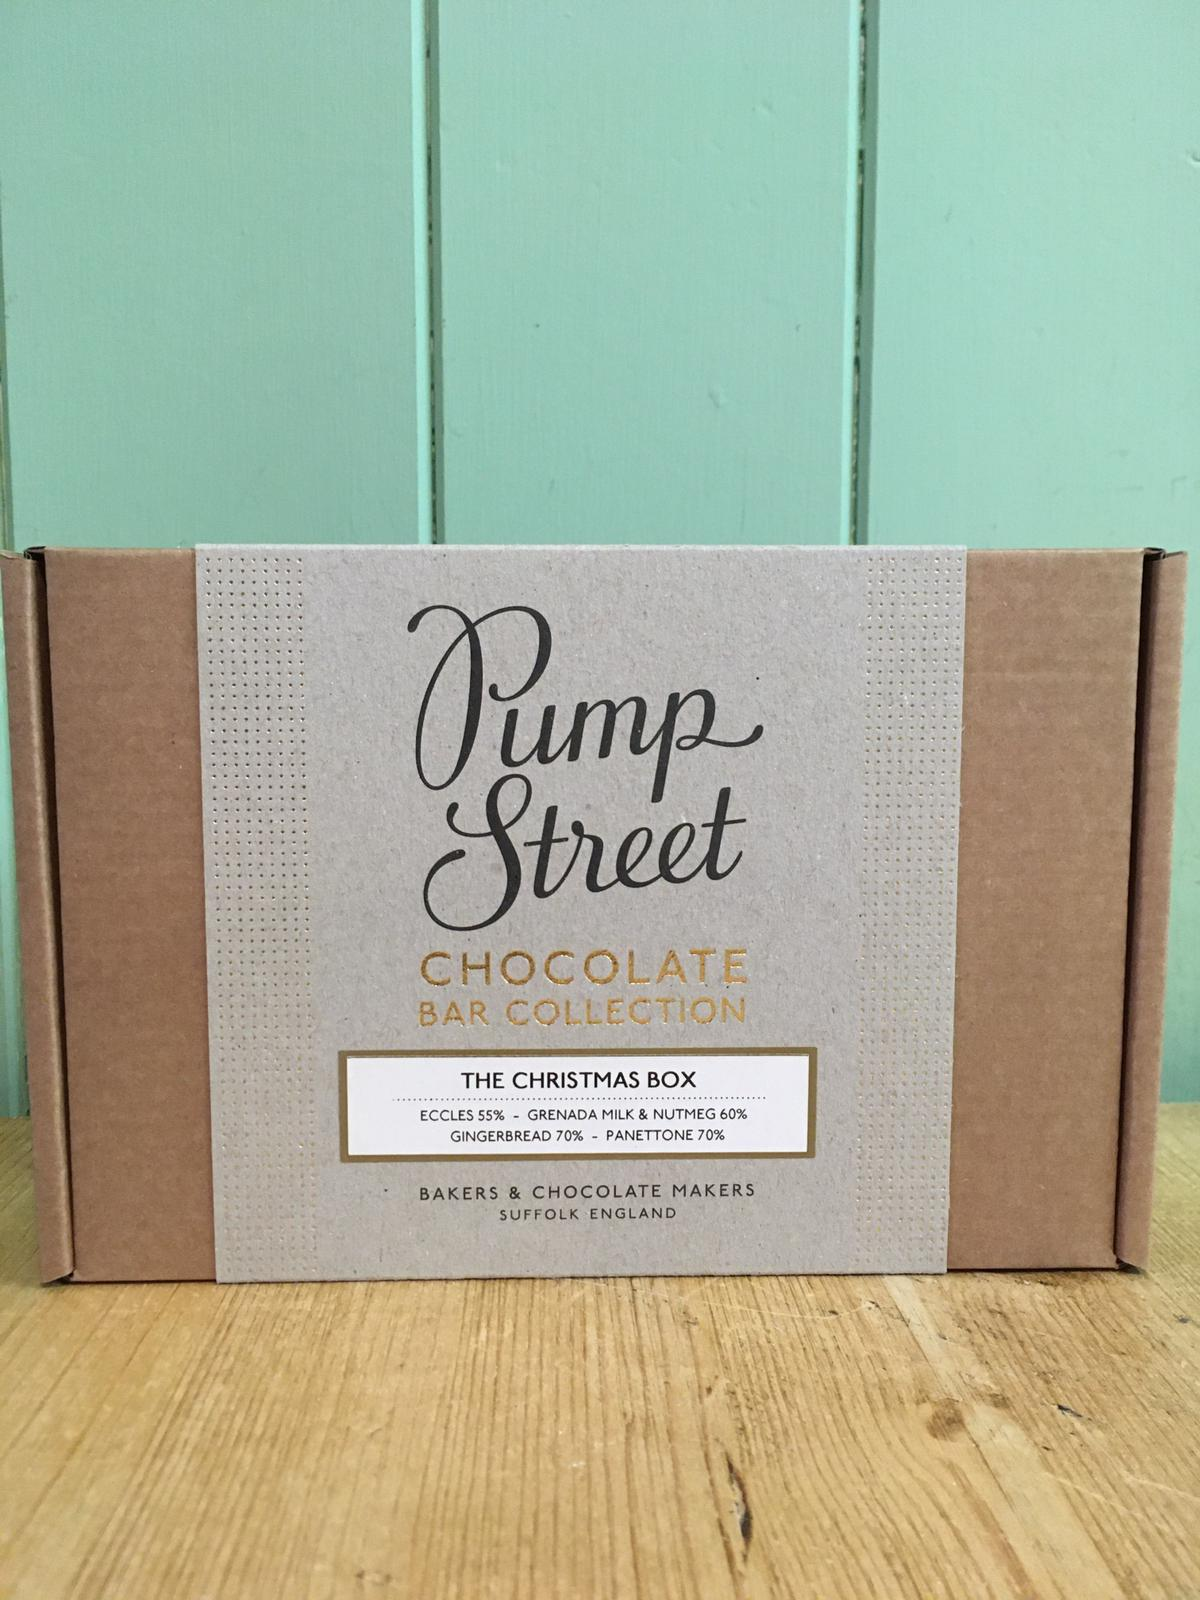 Pump Street Chocolate - The Christmas Box Chocolate Bar Collection (Eccles, Grenada Milk and Nutmeg, Gingerbread, Panettone) 4 x 70g